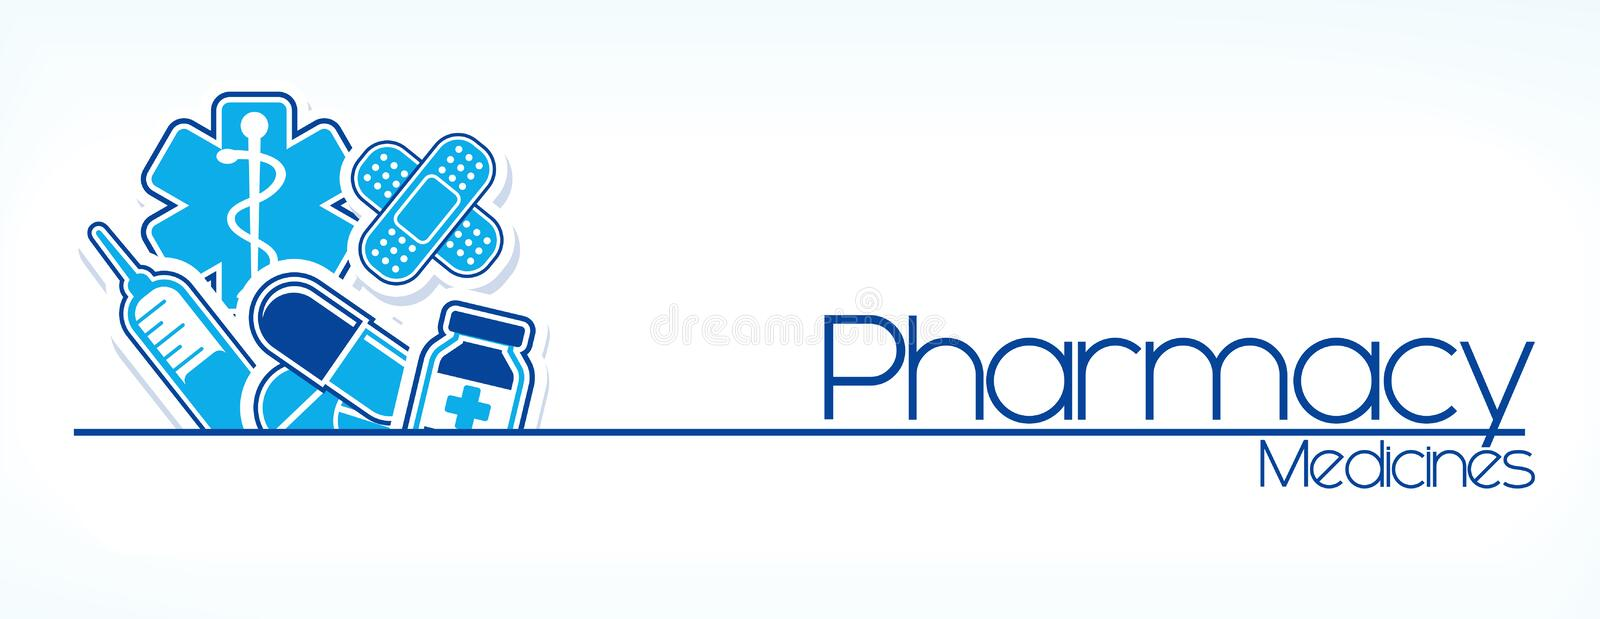 Pharmacy sign design stock illustration